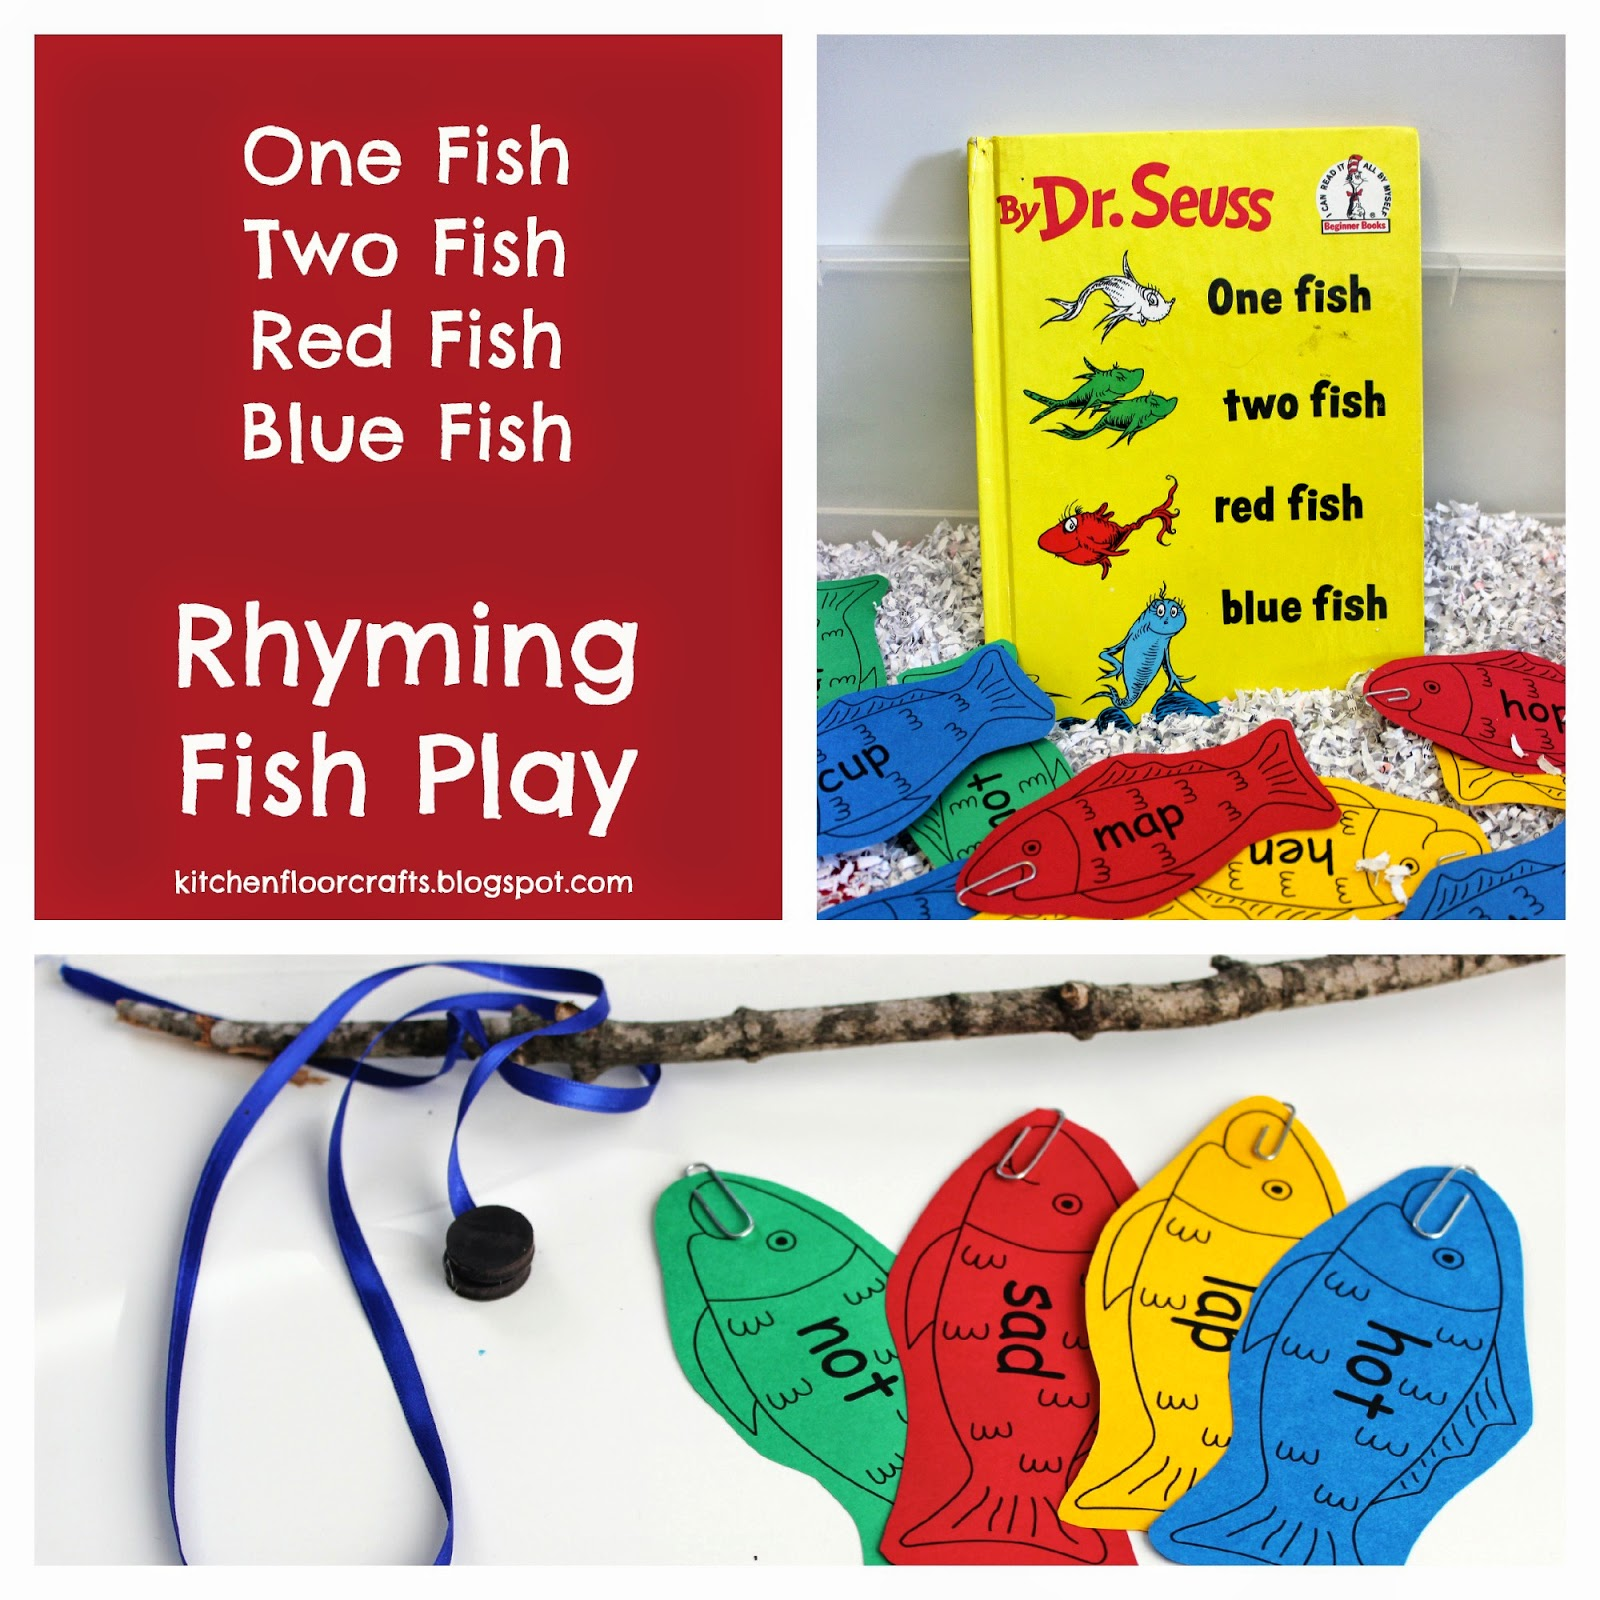 Kitchen Floor Crafts: Rhyming Fish Play with Dr. Seuss